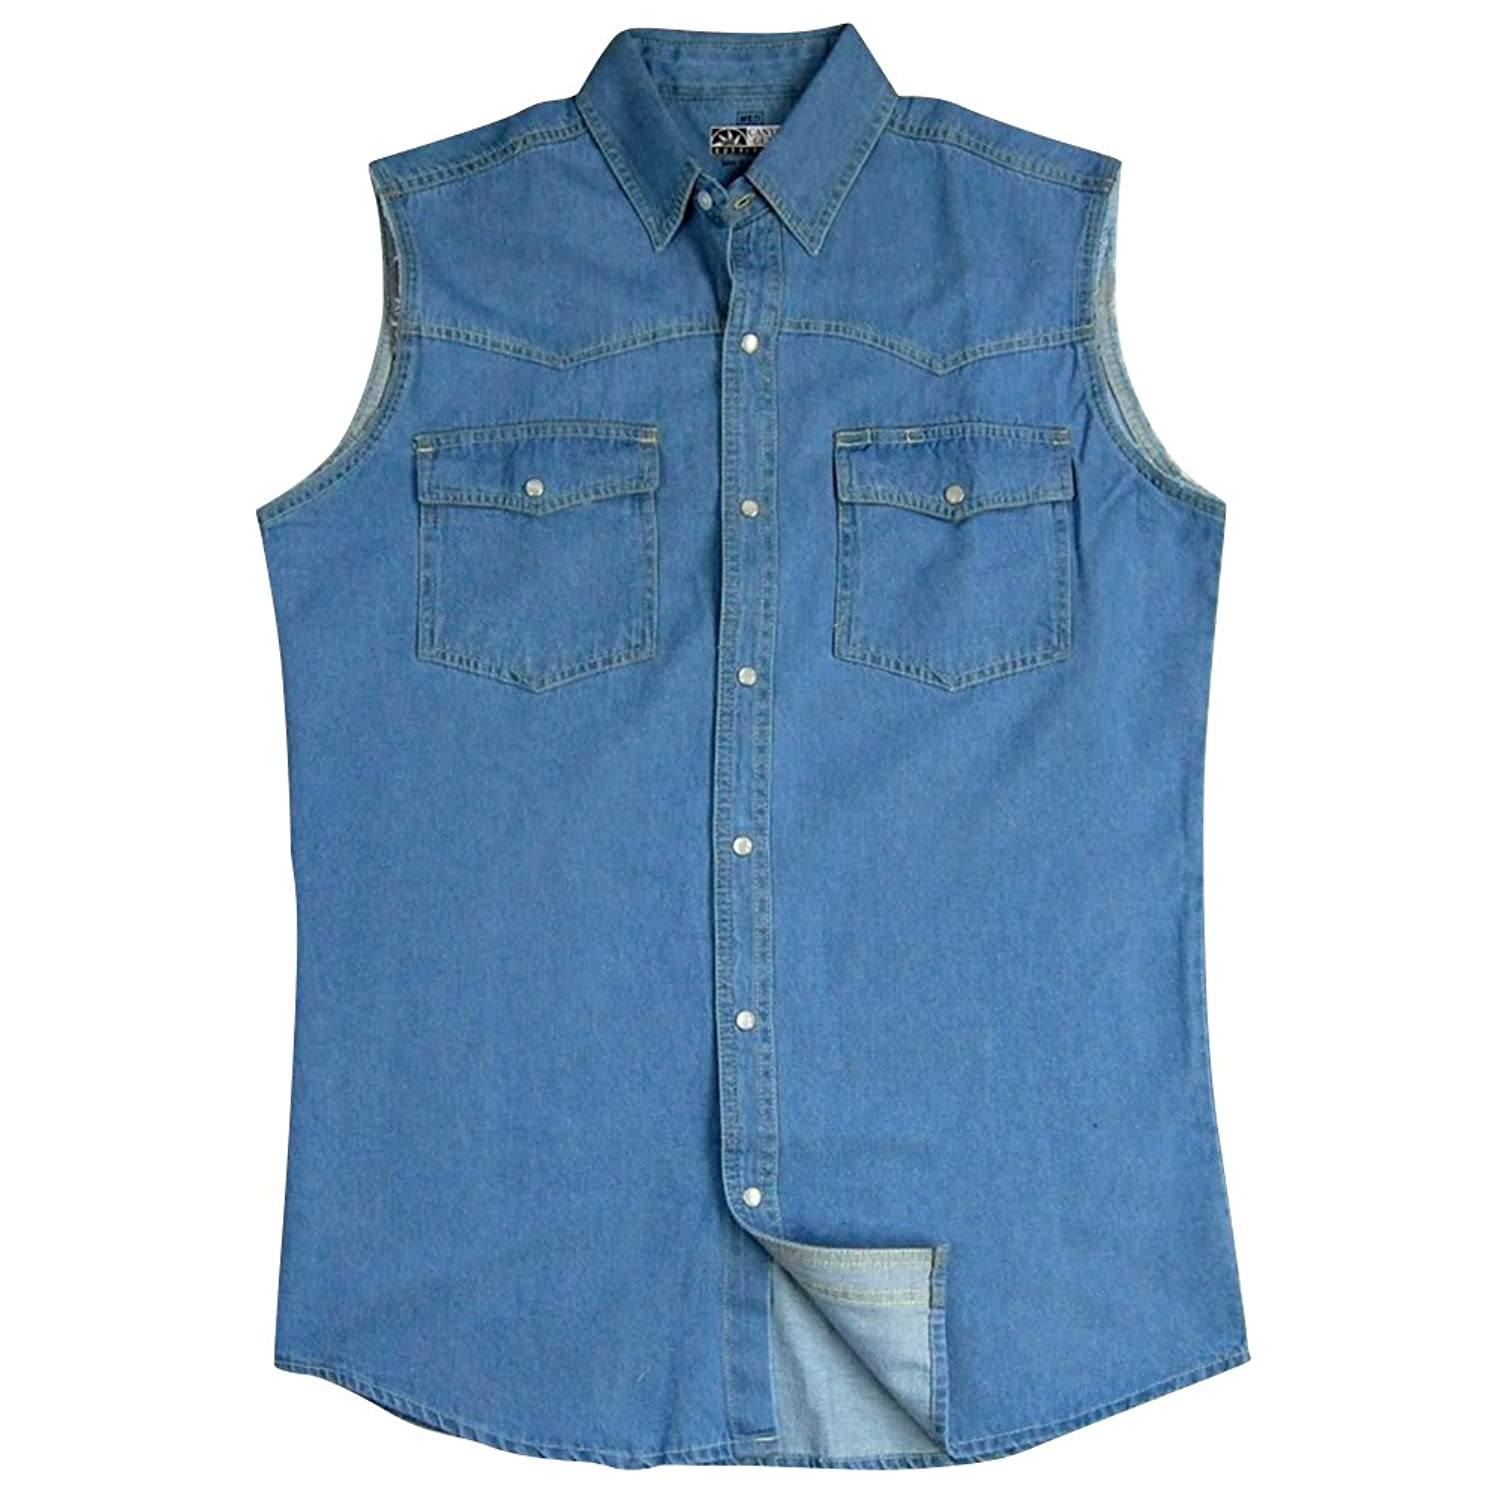 155c3a6d607 Sleeveless Denim Shirts Wholesale – EDGE Engineering and Consulting ...